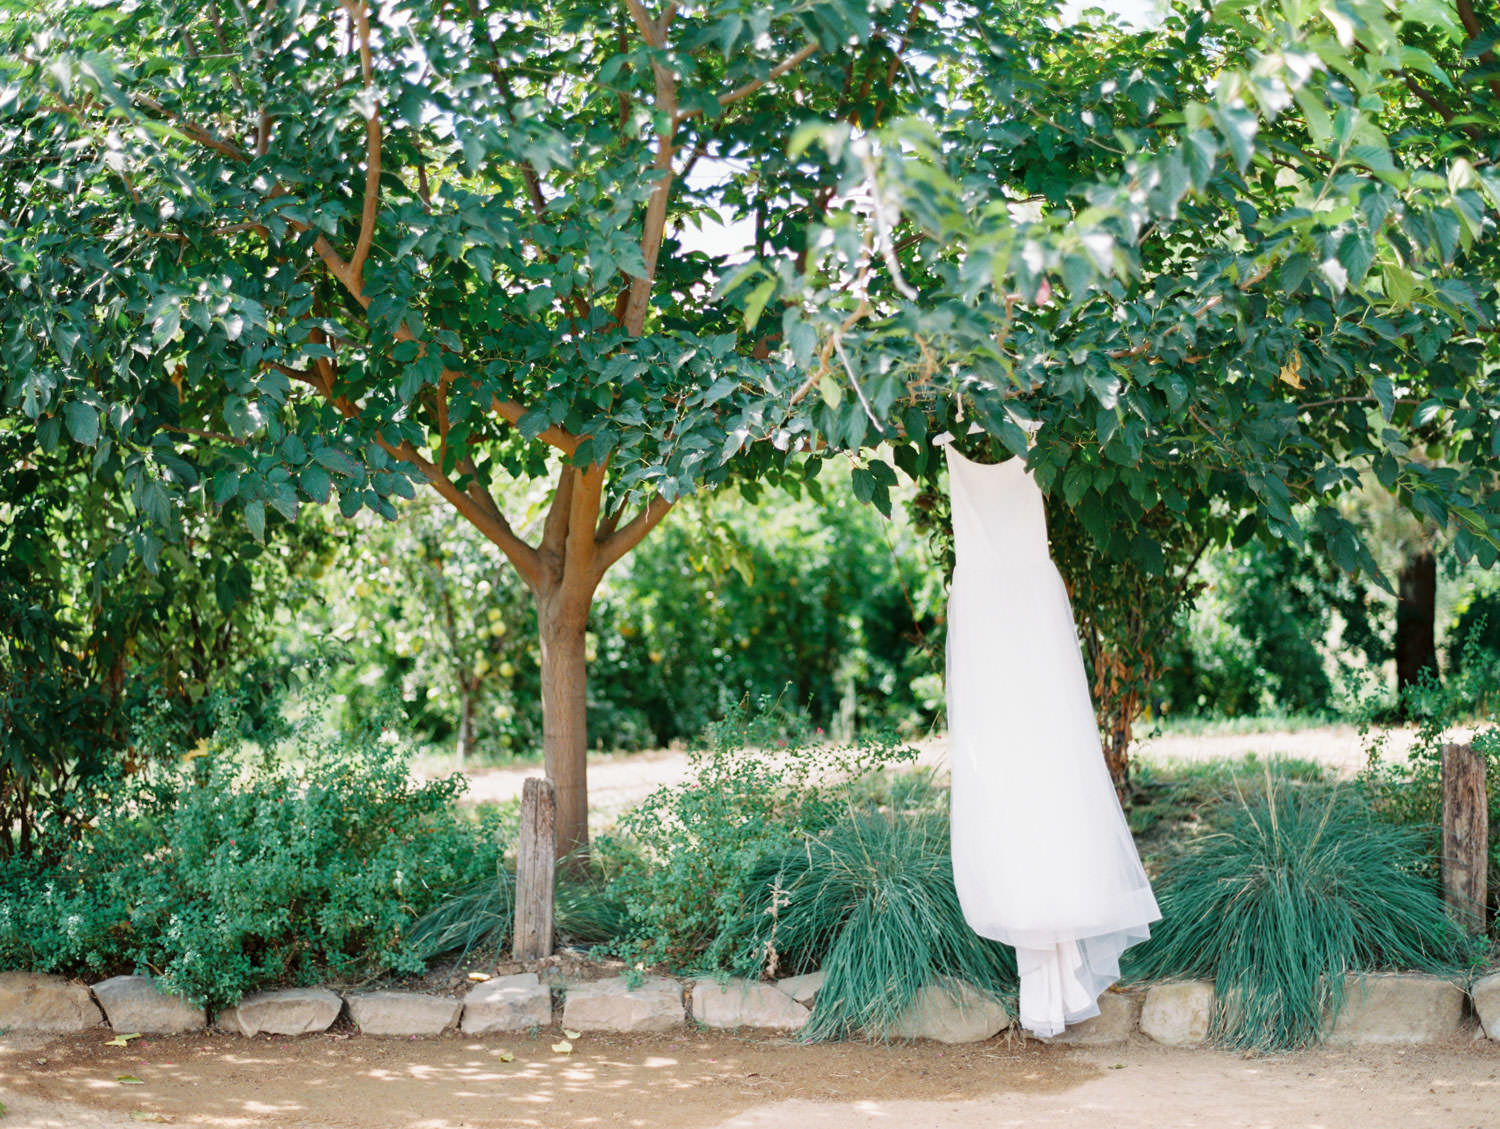 Mikaella Bridal scoop neck wedding dress hanging from a tree on film. Full Belly Farm on Martha Stewart Weddings by Cavin Elizabeth Photography